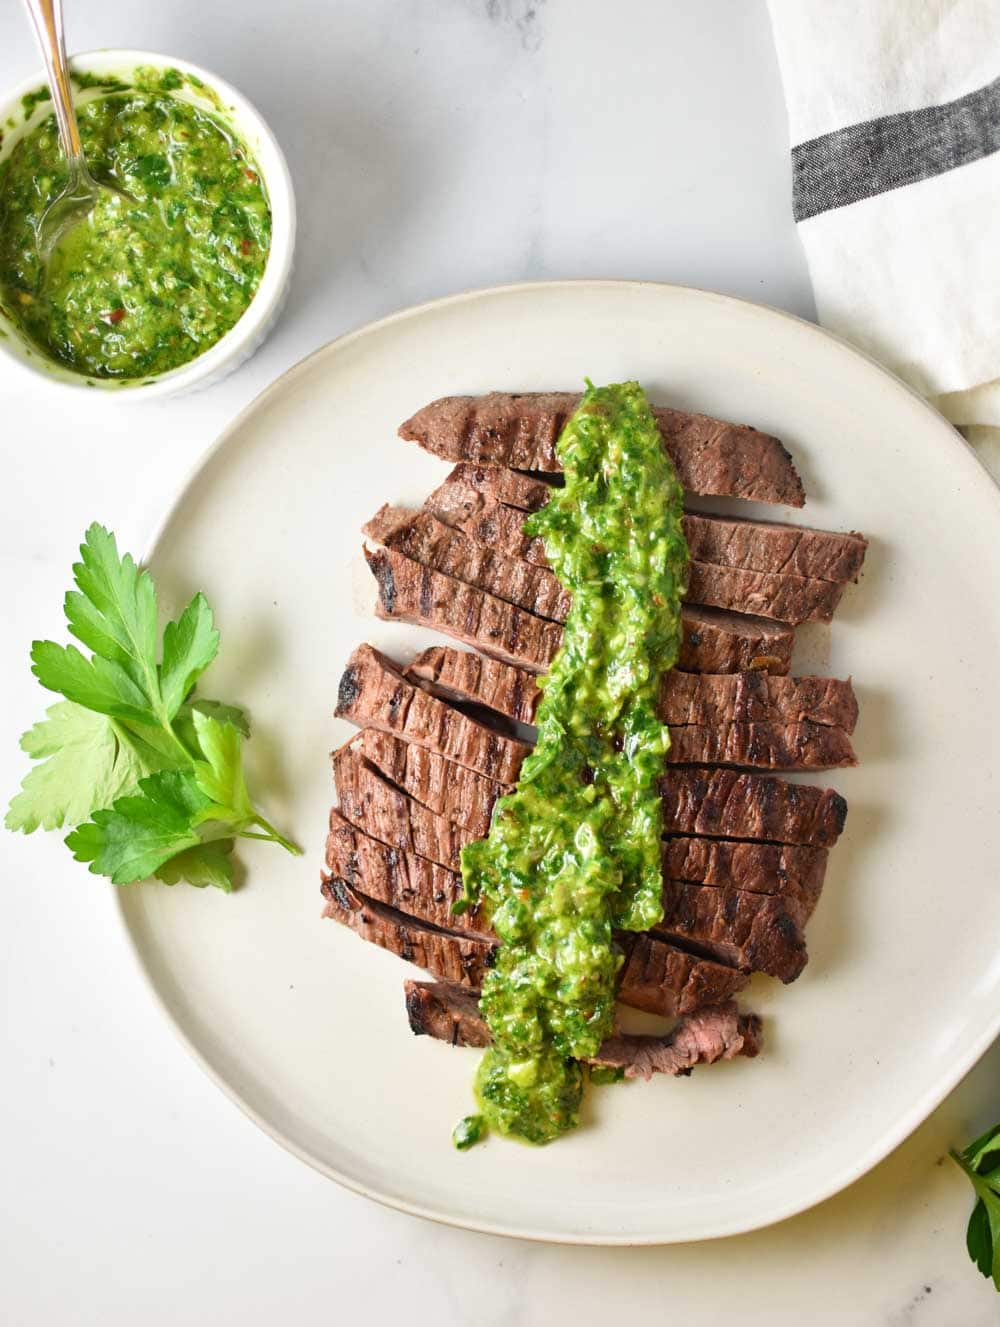 Sliced flank steak on a plate with chimichurri sauce on top and parsley